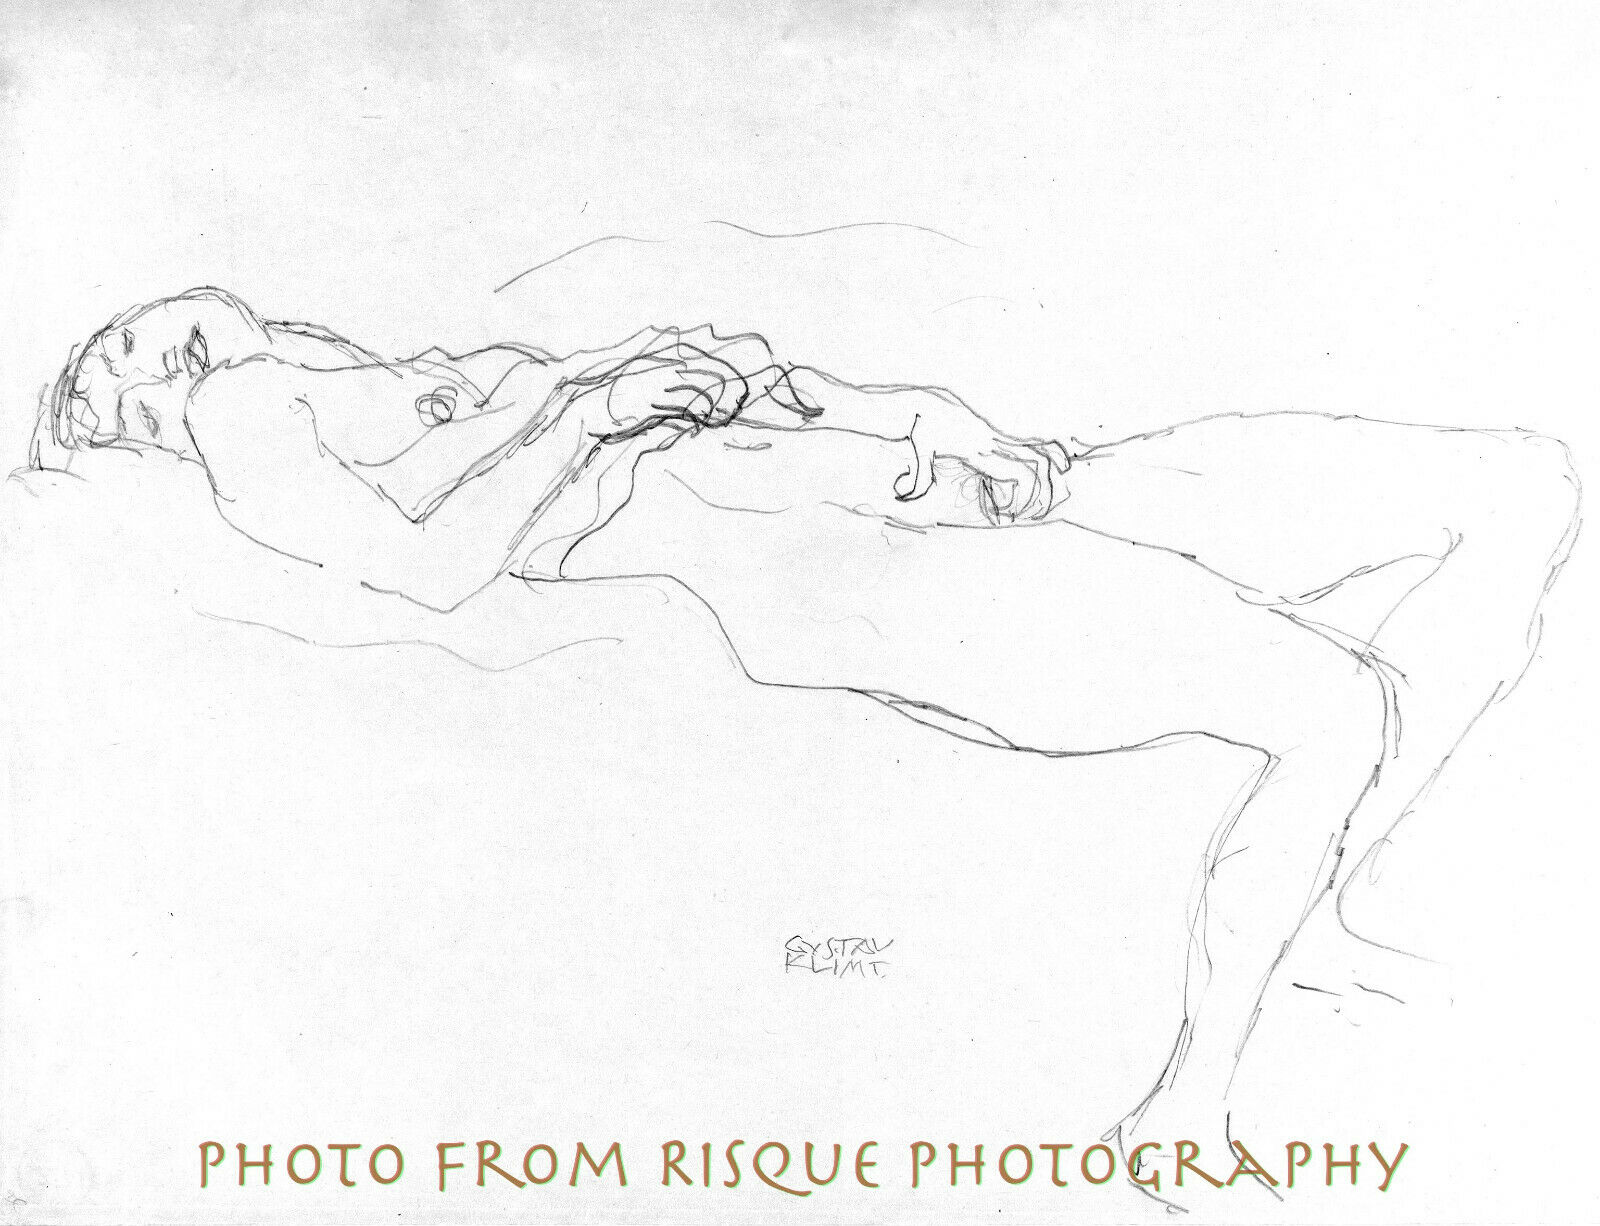 Details about nude woman pencil drawing 8 5x11 photo print gustav klimt fine art naked sketch